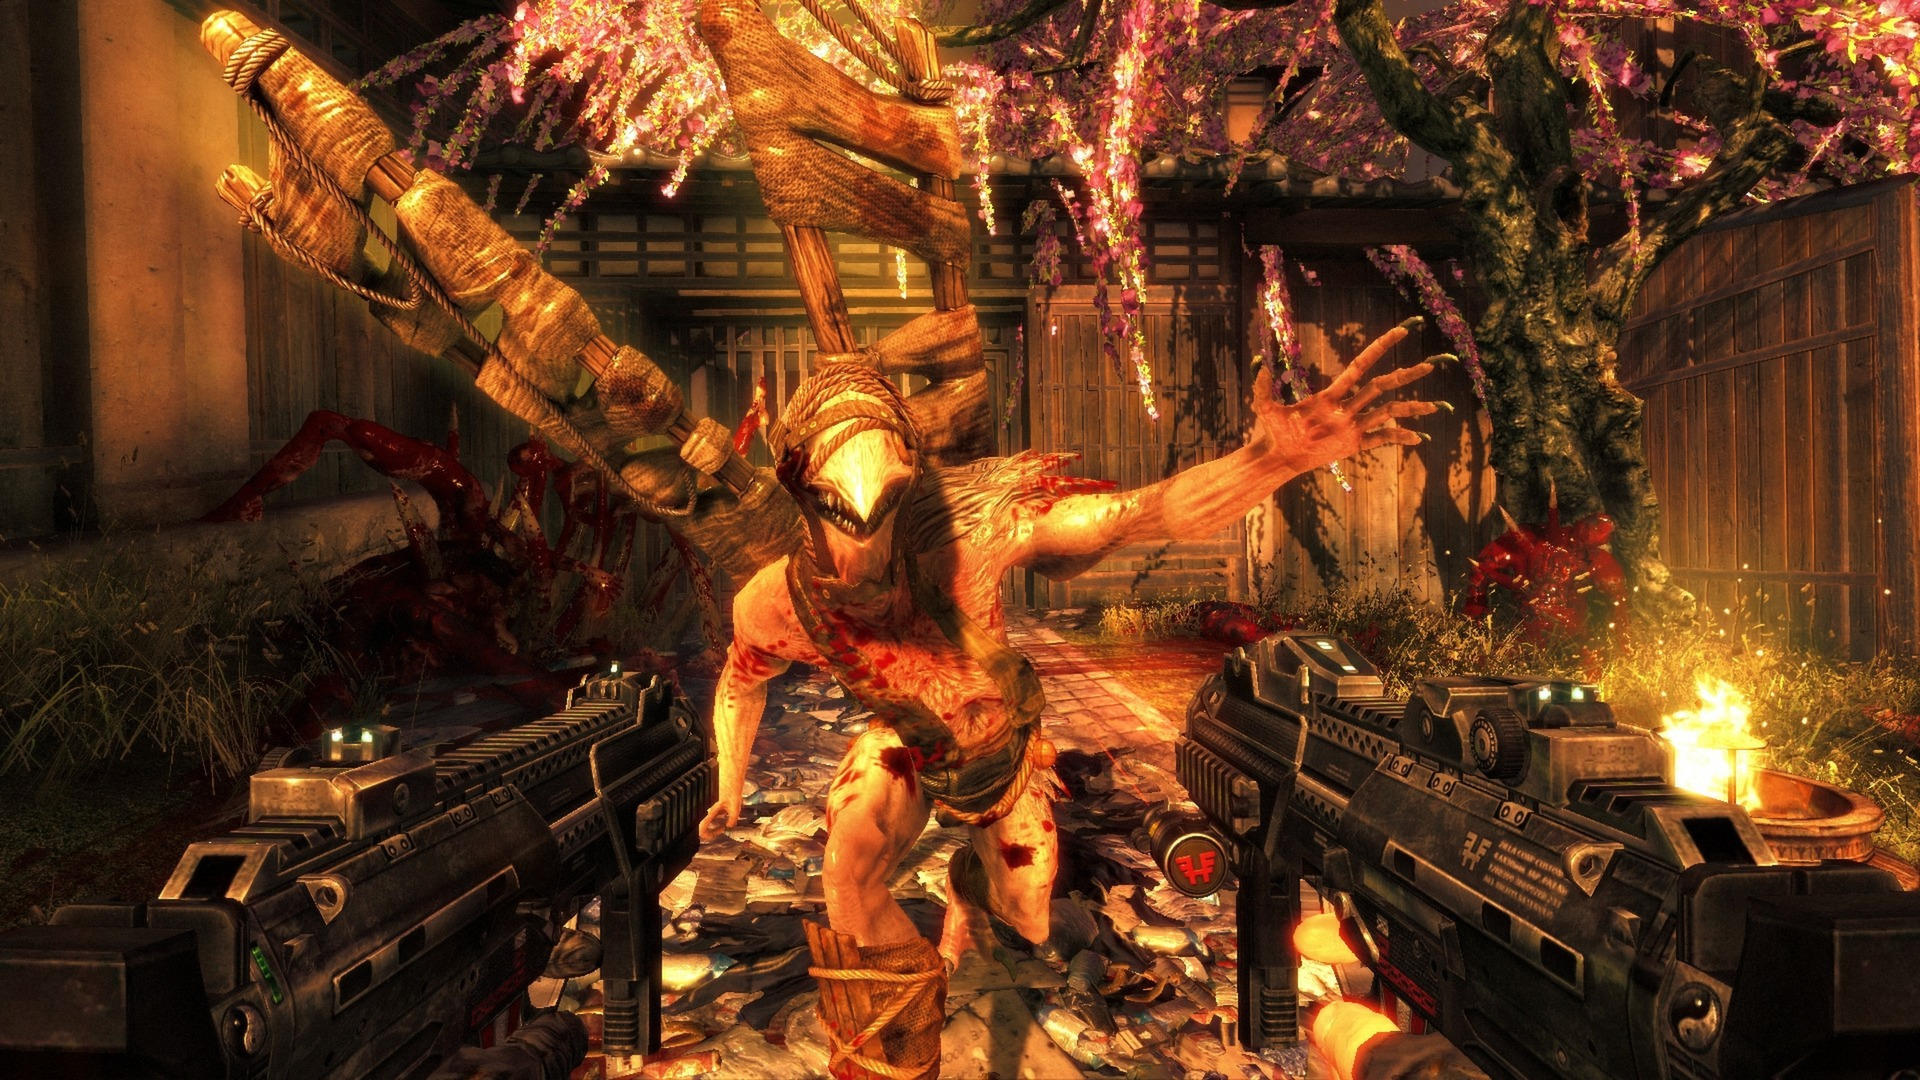 Shadow warrior pc review and download | old pc gaming.